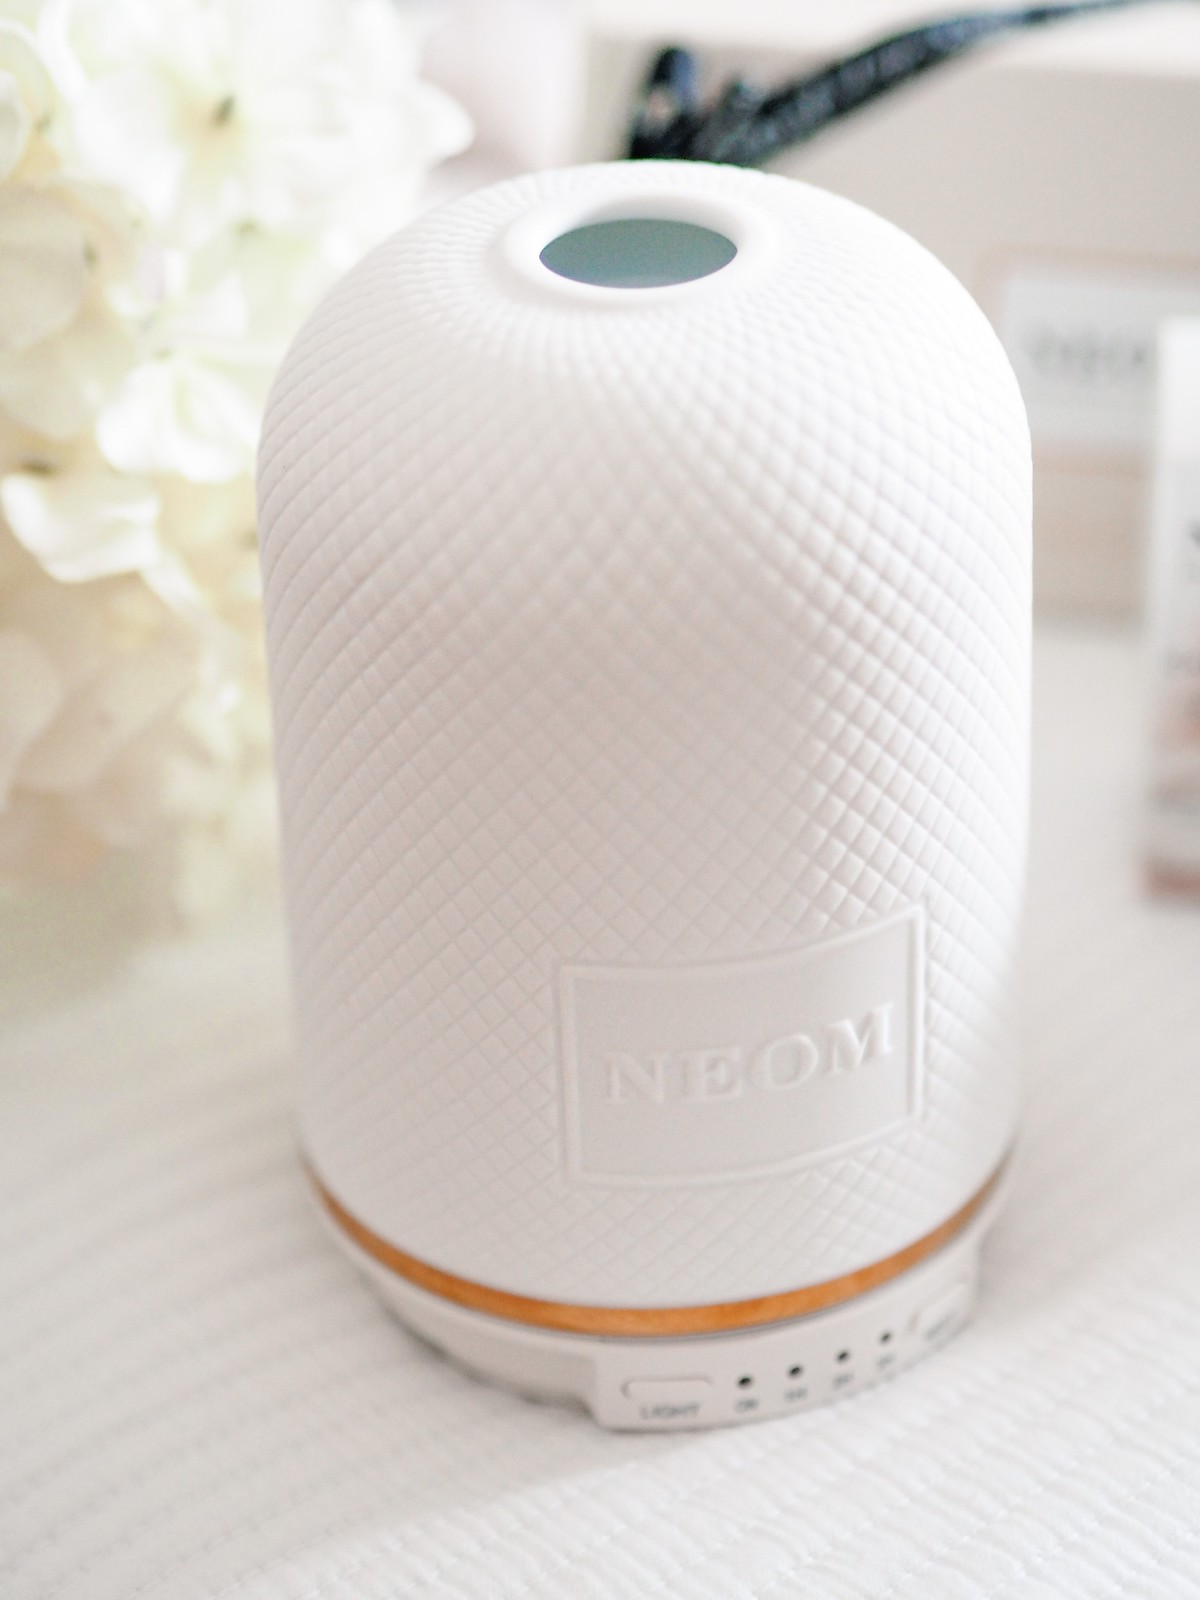 Neom Wellbeing Pod Review